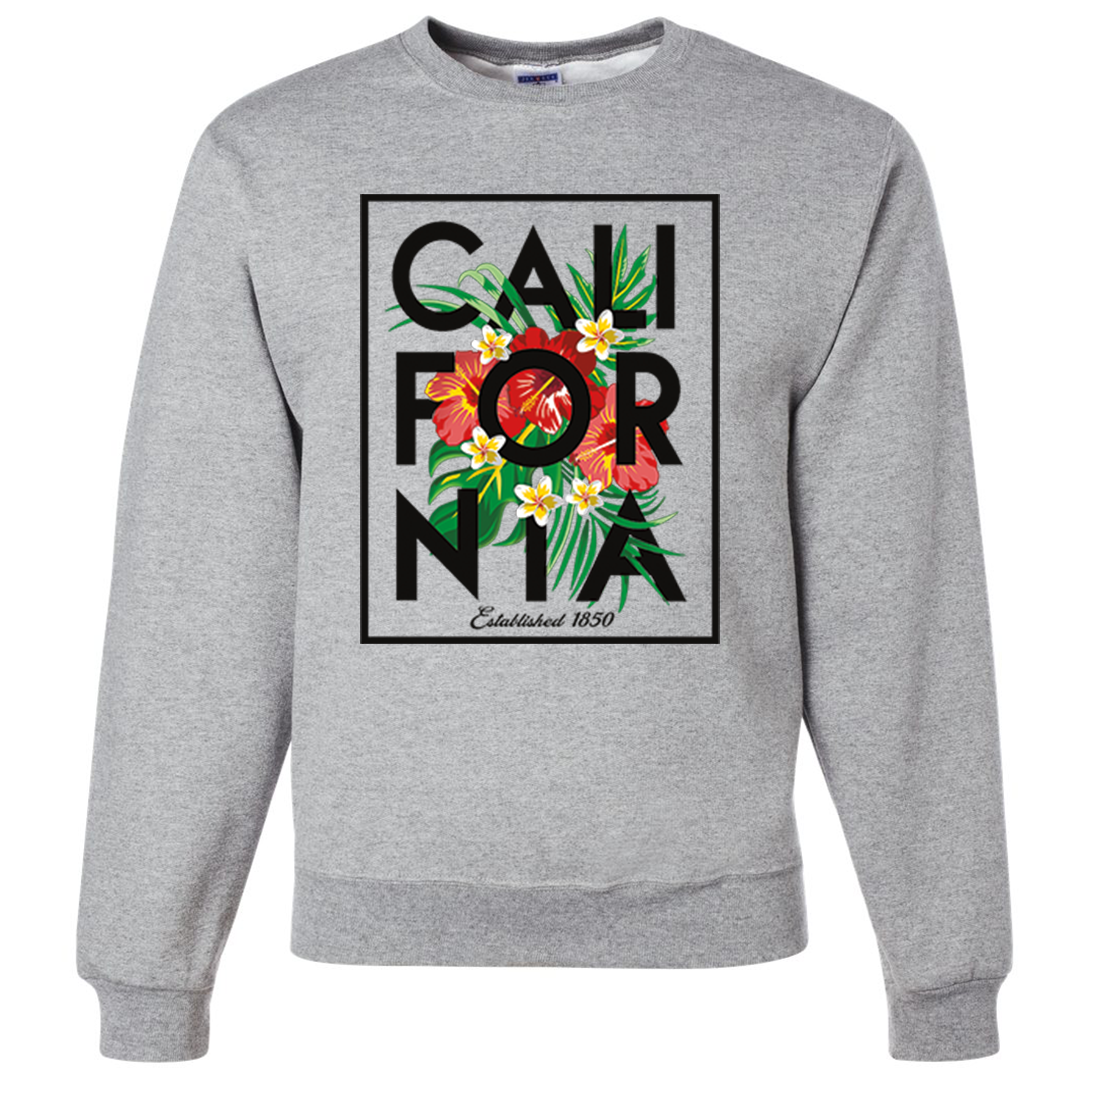 Be seen in one of the highestquality classic fit pullover